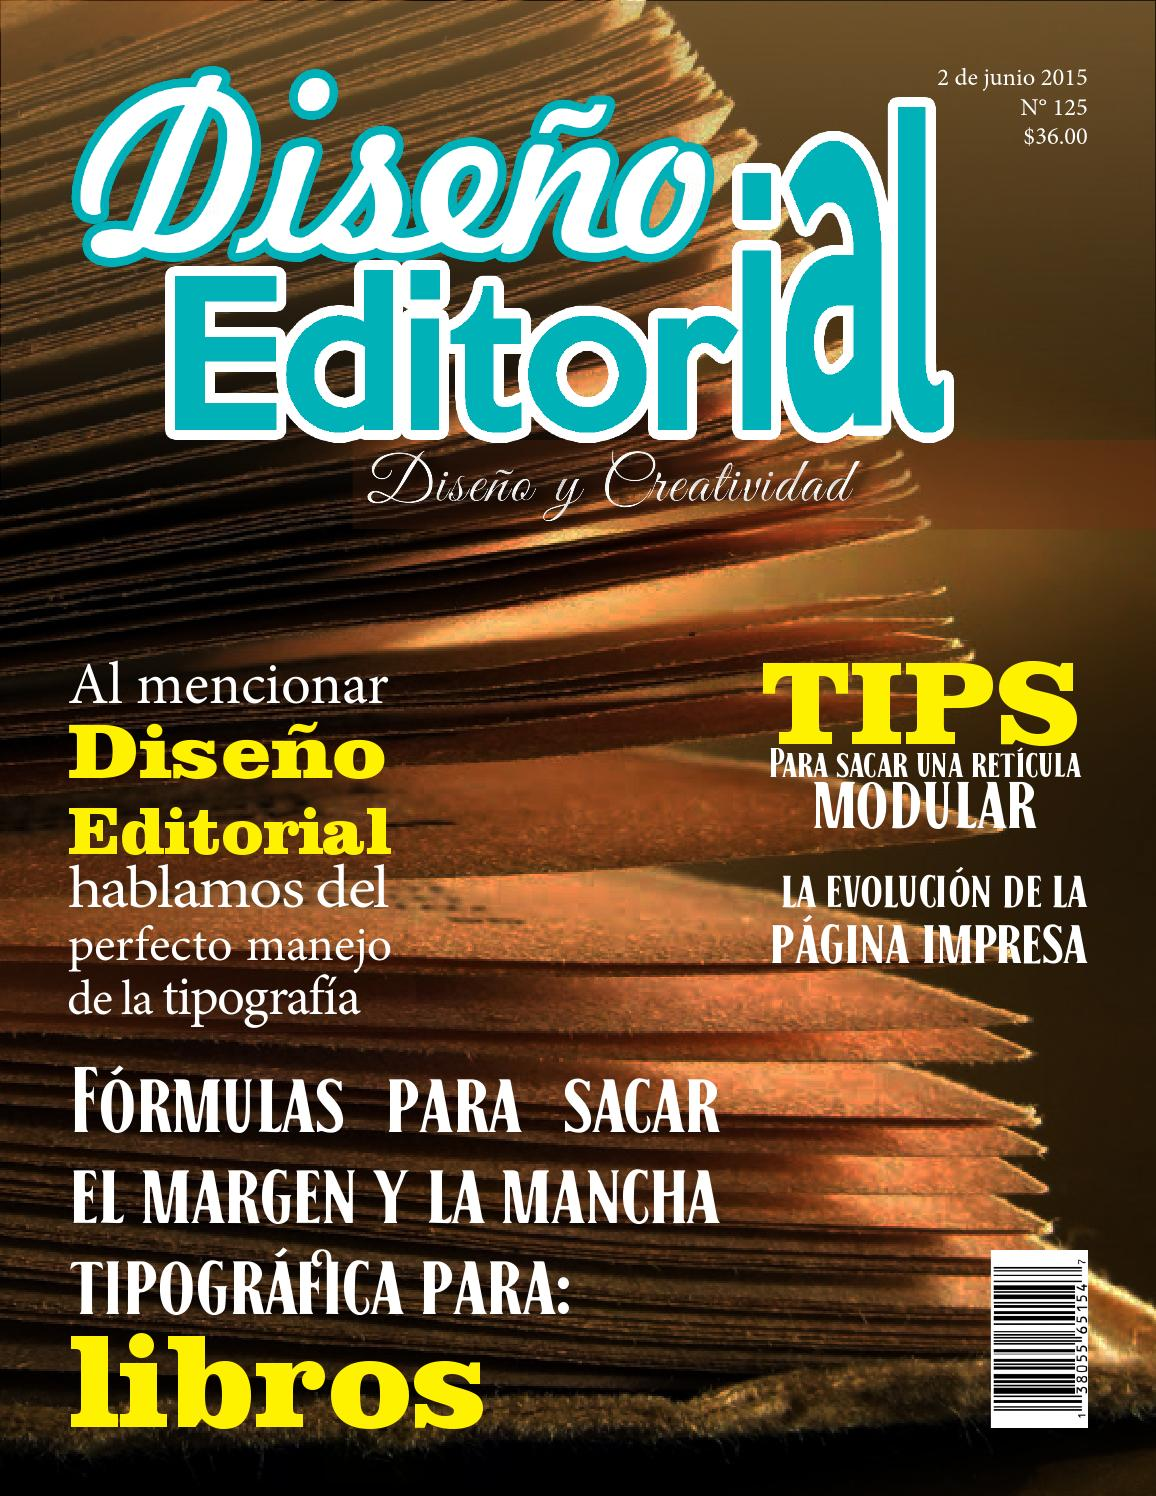 Corrector De Libros Diseño Editorial By Francisco Muñoz Castañeda Issuu